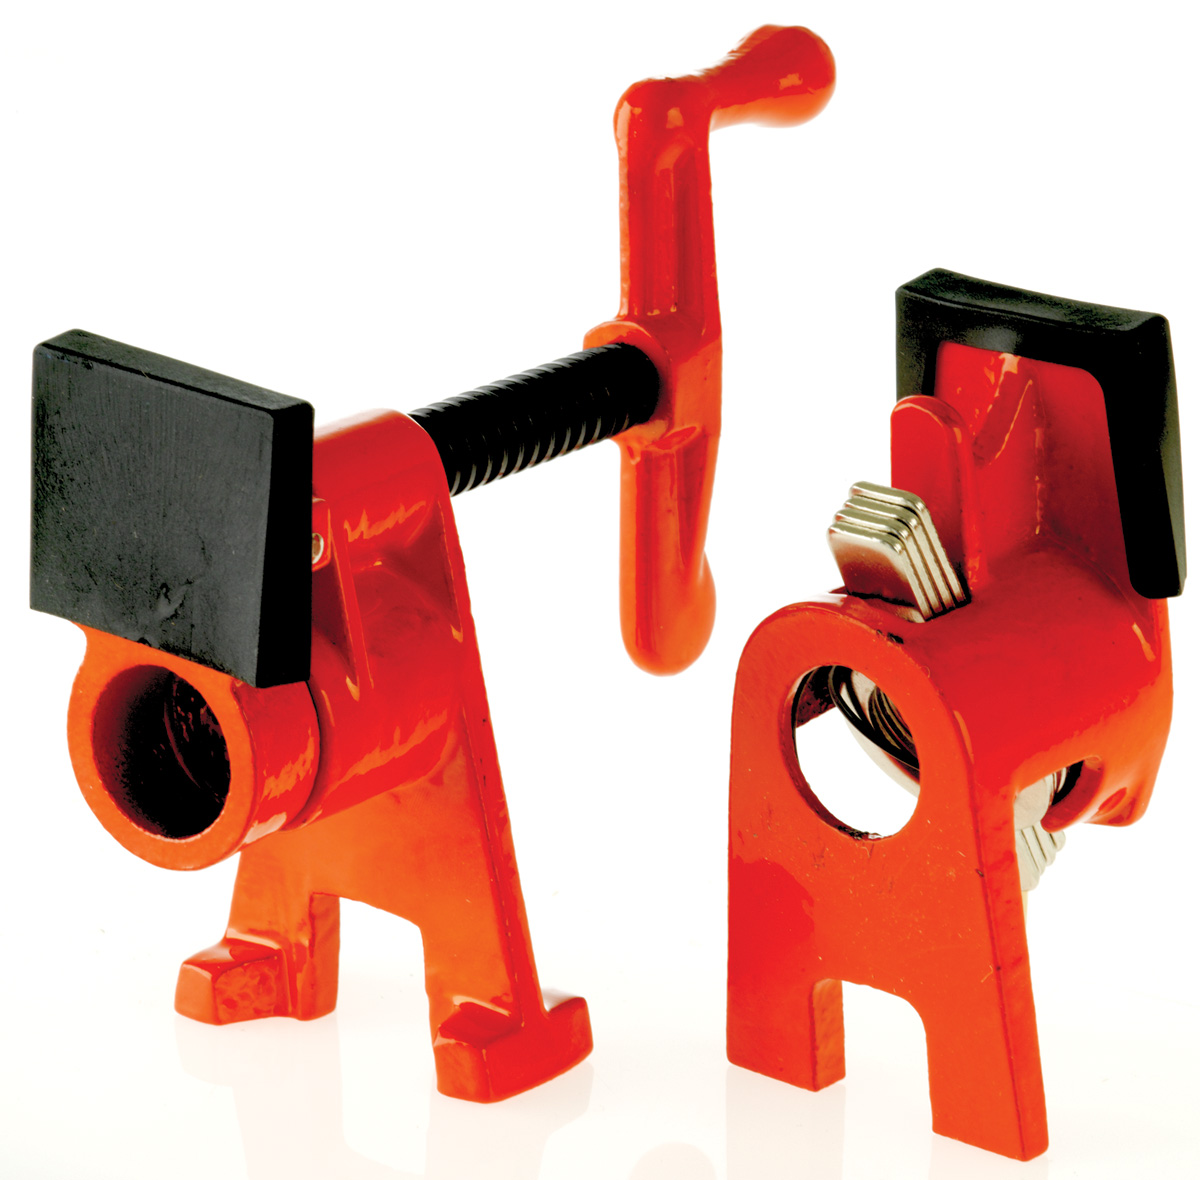 Bessey 1/2 in. H Series Pipe Clamp